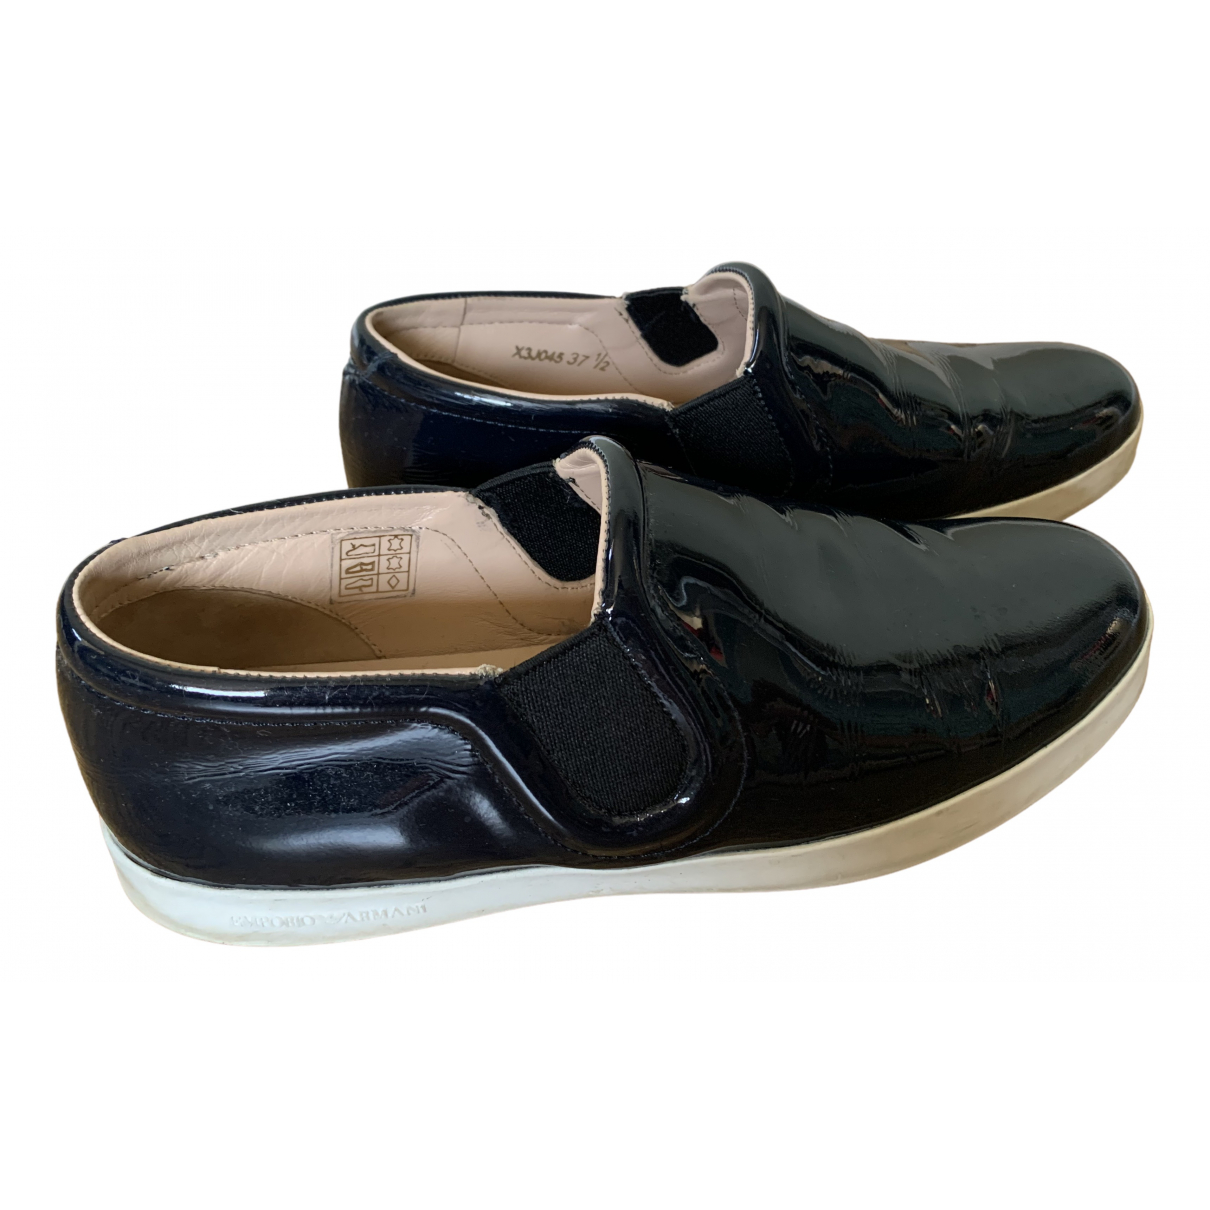 Emporio Armani \N Blue Patent leather Trainers for Women 37.5 EU